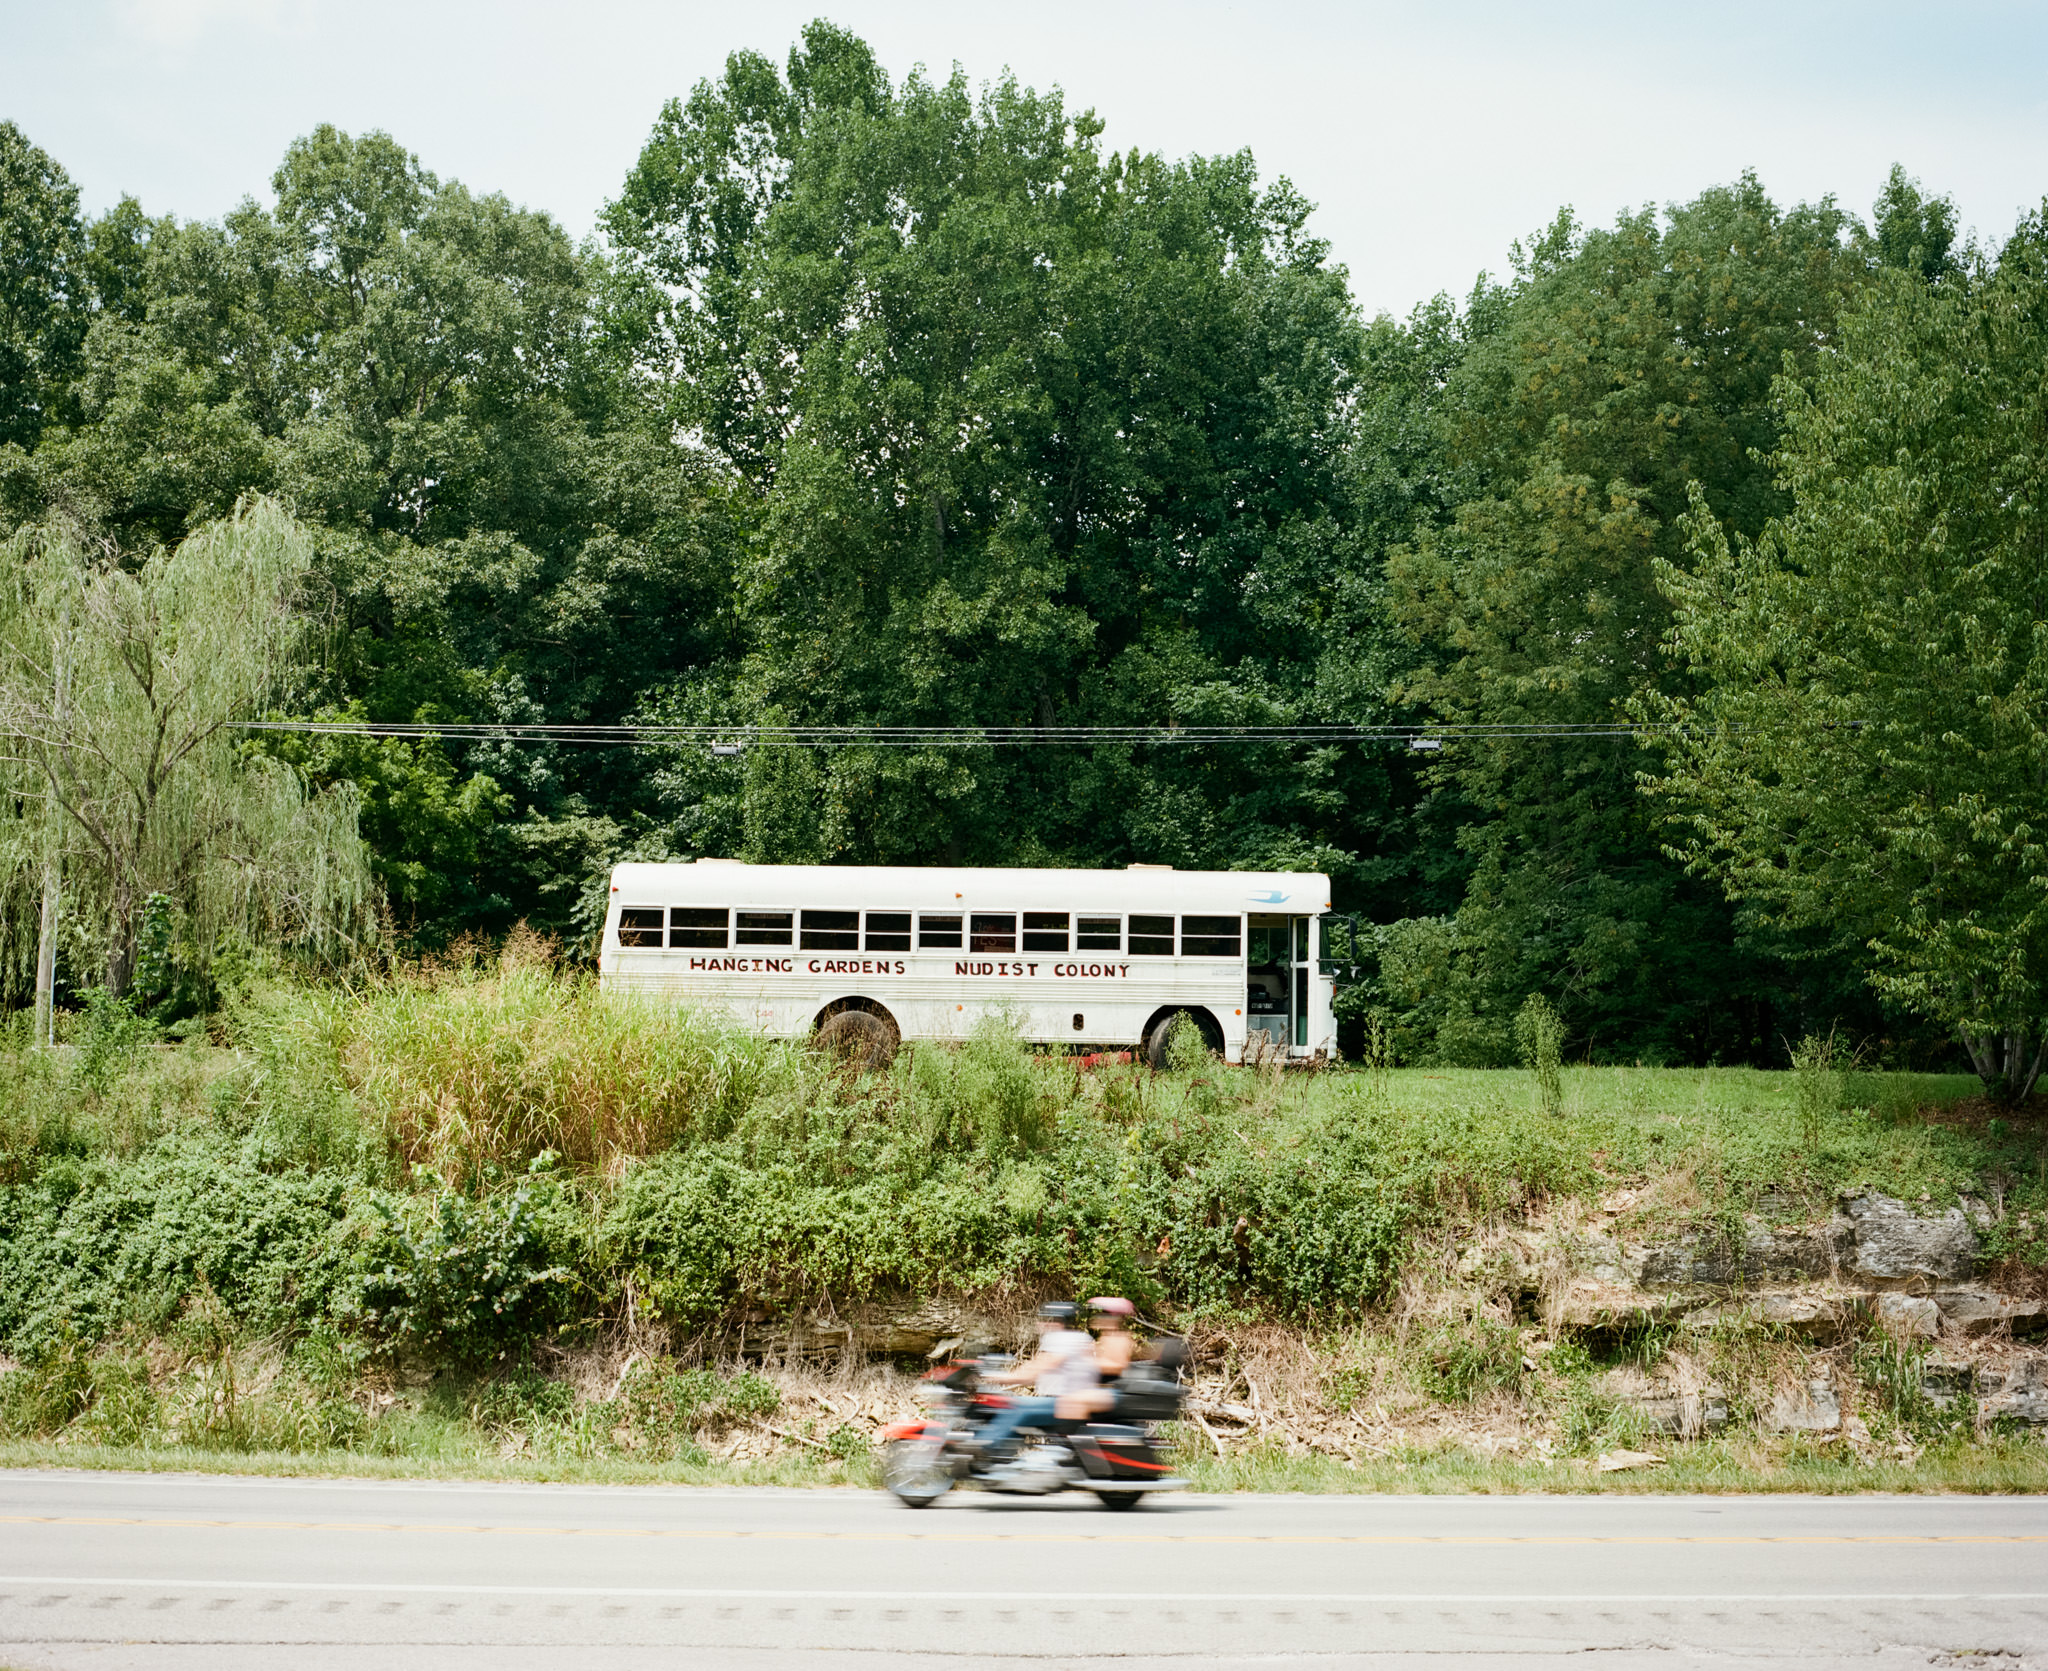 Image of white bus with Hanging Gardens Nudist Colony written on side, taken with the Mamiya 7 and 80mm f/4 lens